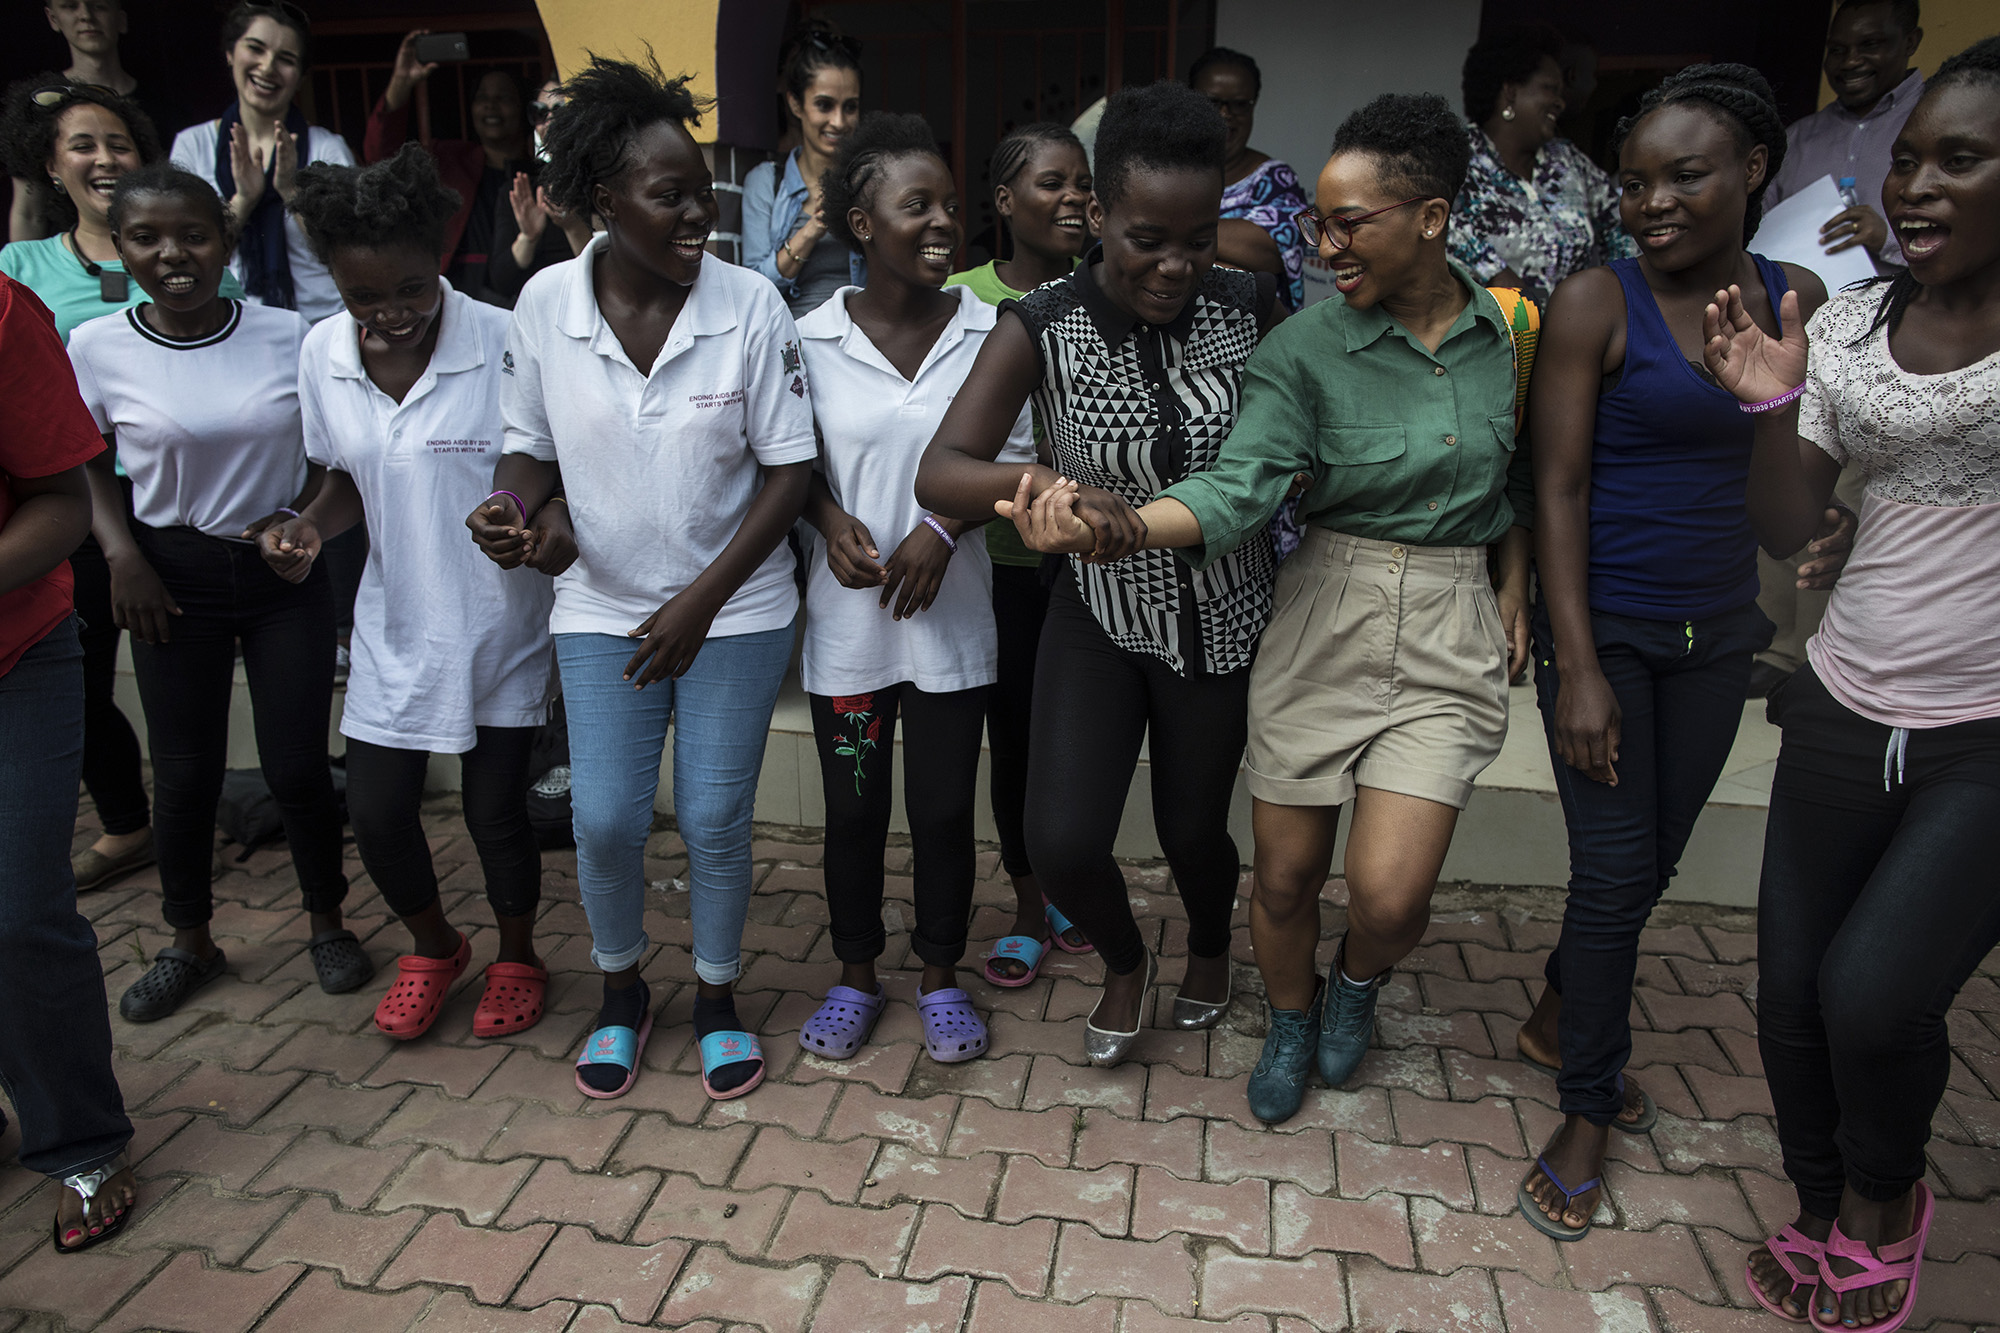 LUSAKA, ZAMBIA: Feb. 19, 2018 - Mia R. Keeys, third from right, Health Policy Advisor to Congresswoman Robin Kelly (D-IL), dances with girls from the DREAMS Center and other CARE Learning Tour to Zambia delegation members after touring the center's facility. Photo by Sarah Grile.